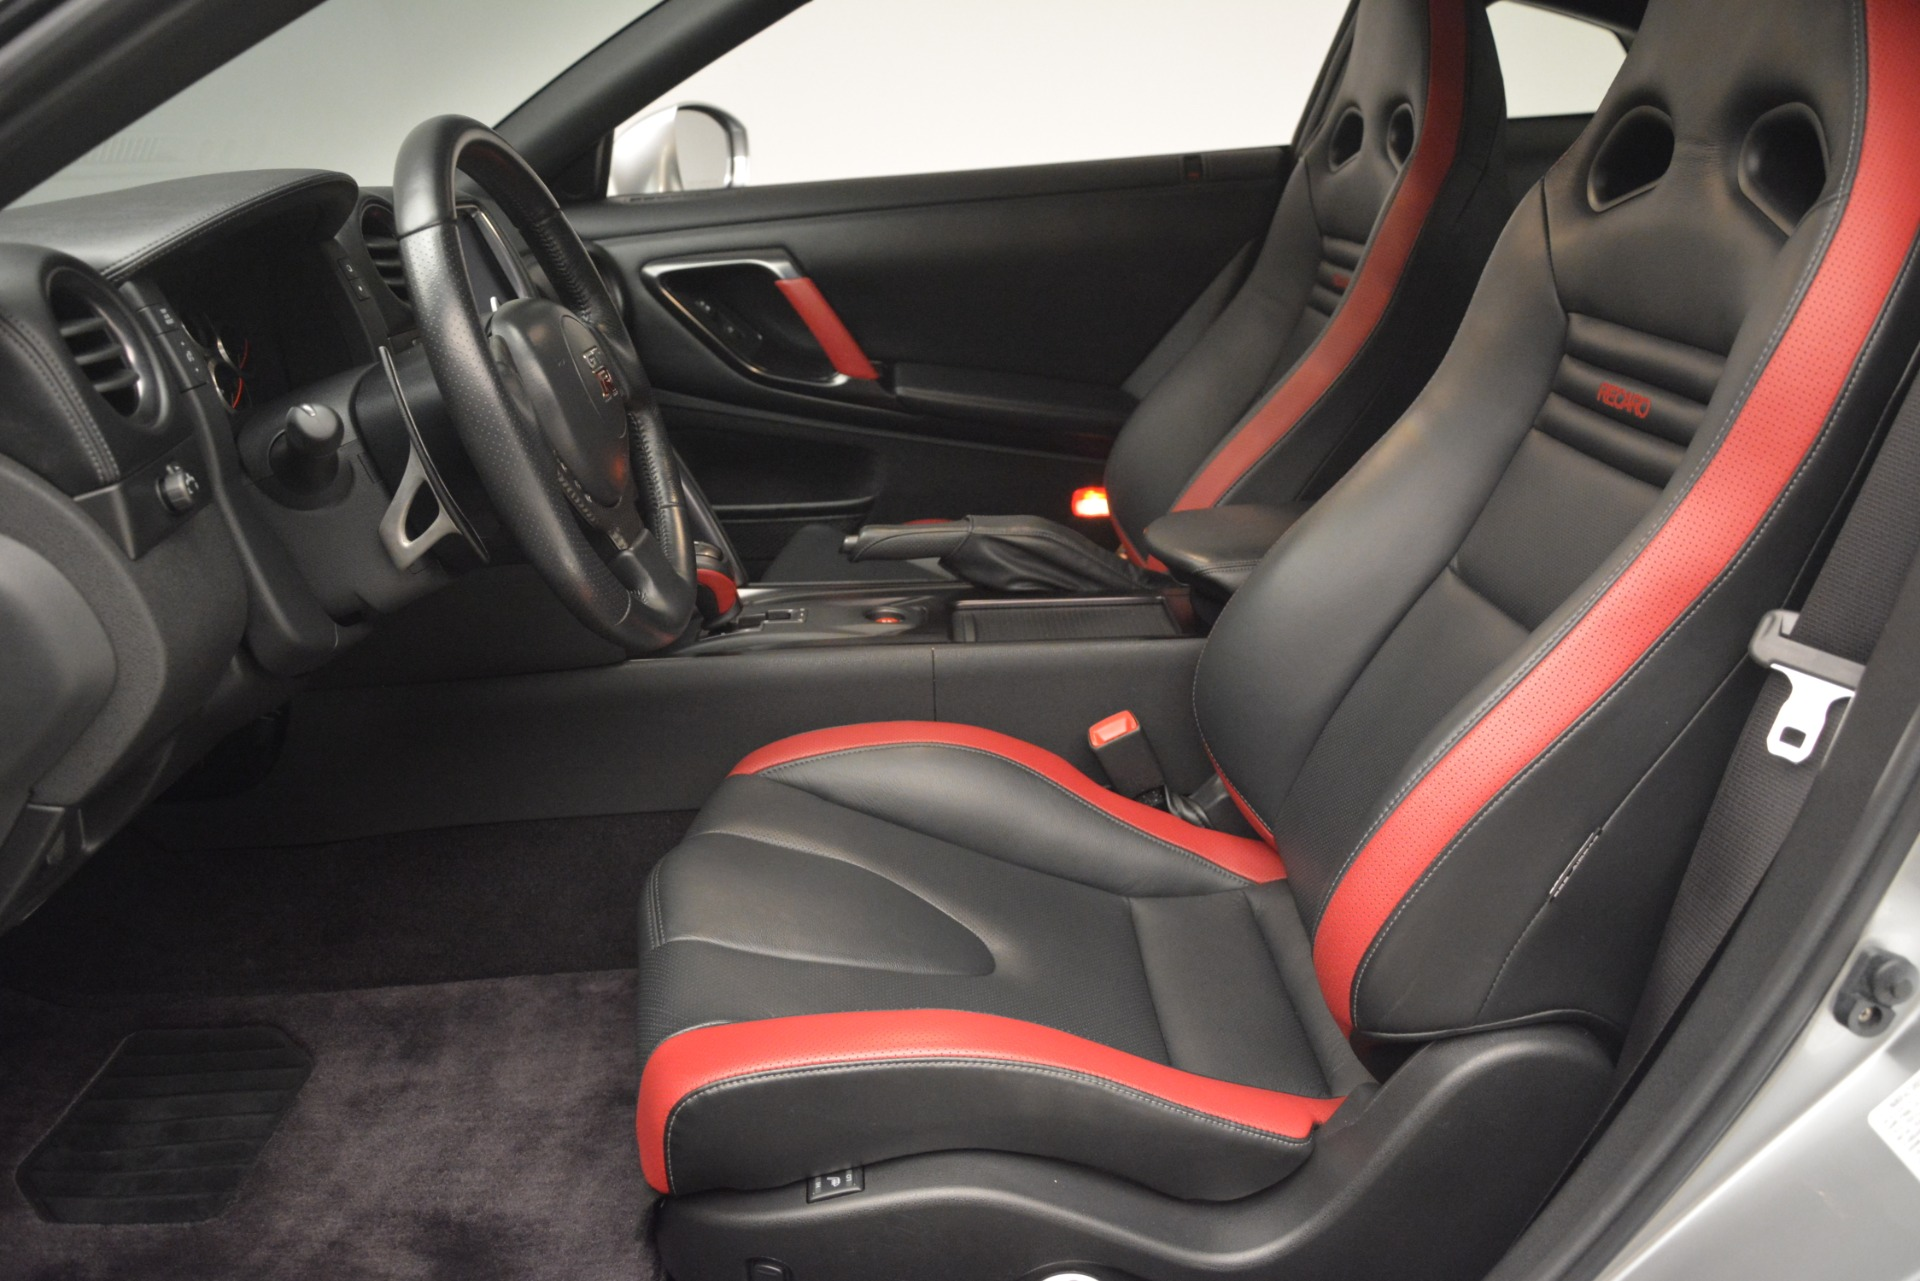 Used 2013 Nissan GT-R Black Edition For Sale In Greenwich, CT. Alfa Romeo of Greenwich, 7520 3028_p16